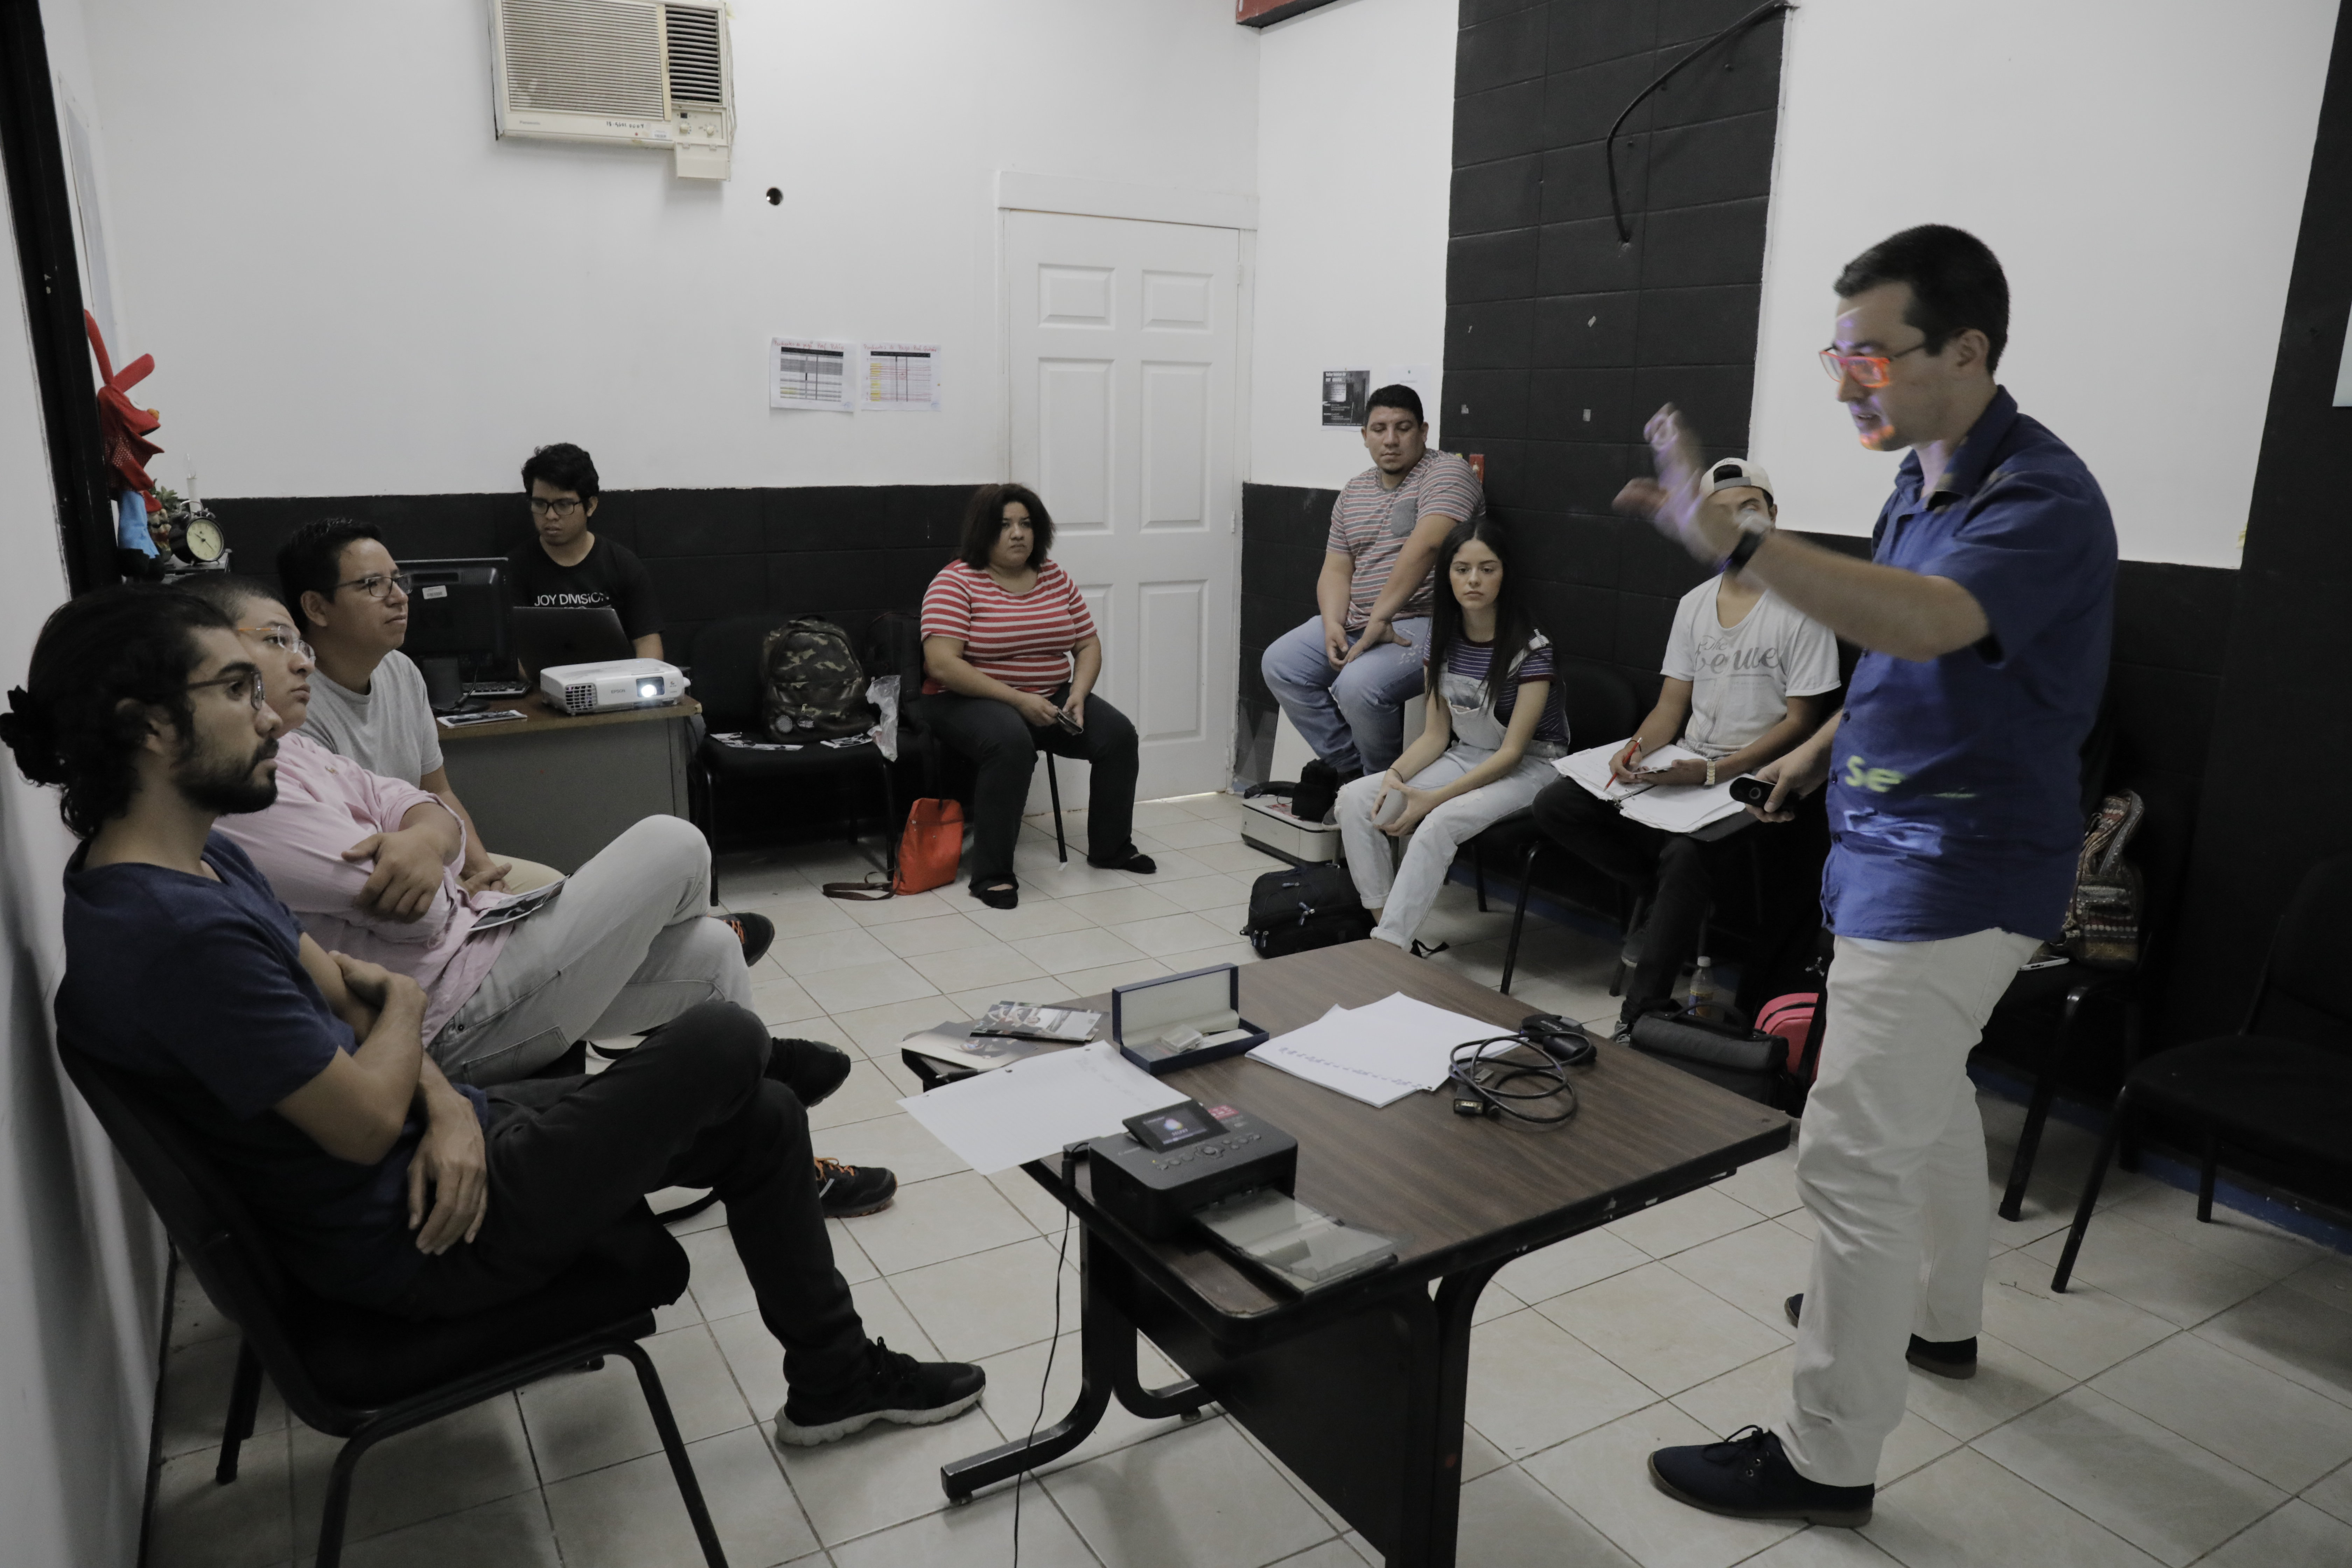 Jean Mazel at CENART University in San Salvador (Photos by Aaron Ganz)